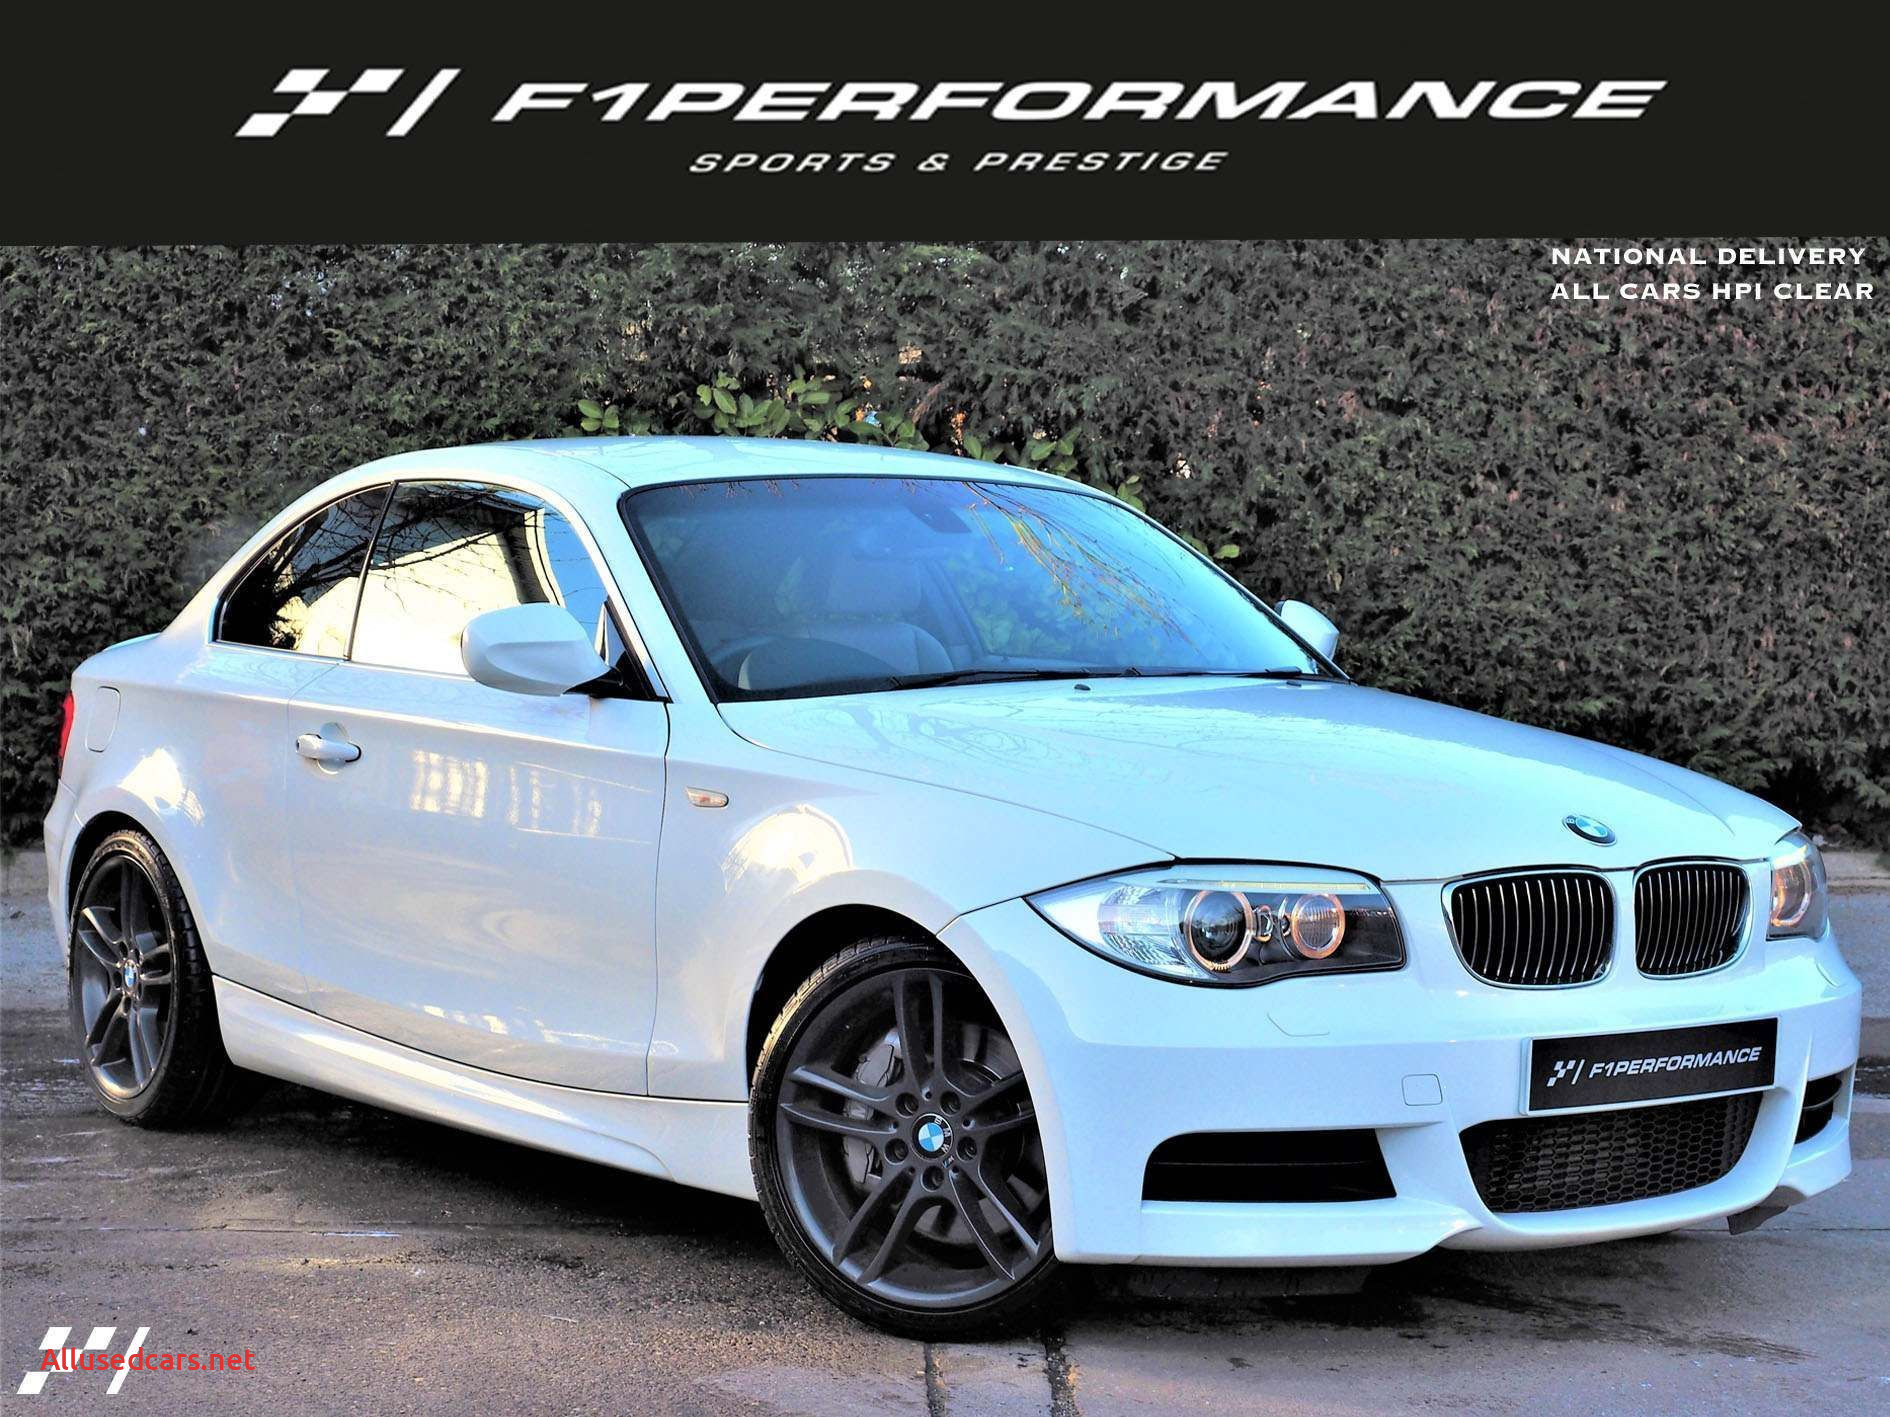 Bmw 135i for Sale Inspirational Used Bmw Cars for Sale In Leeds Yorkshire